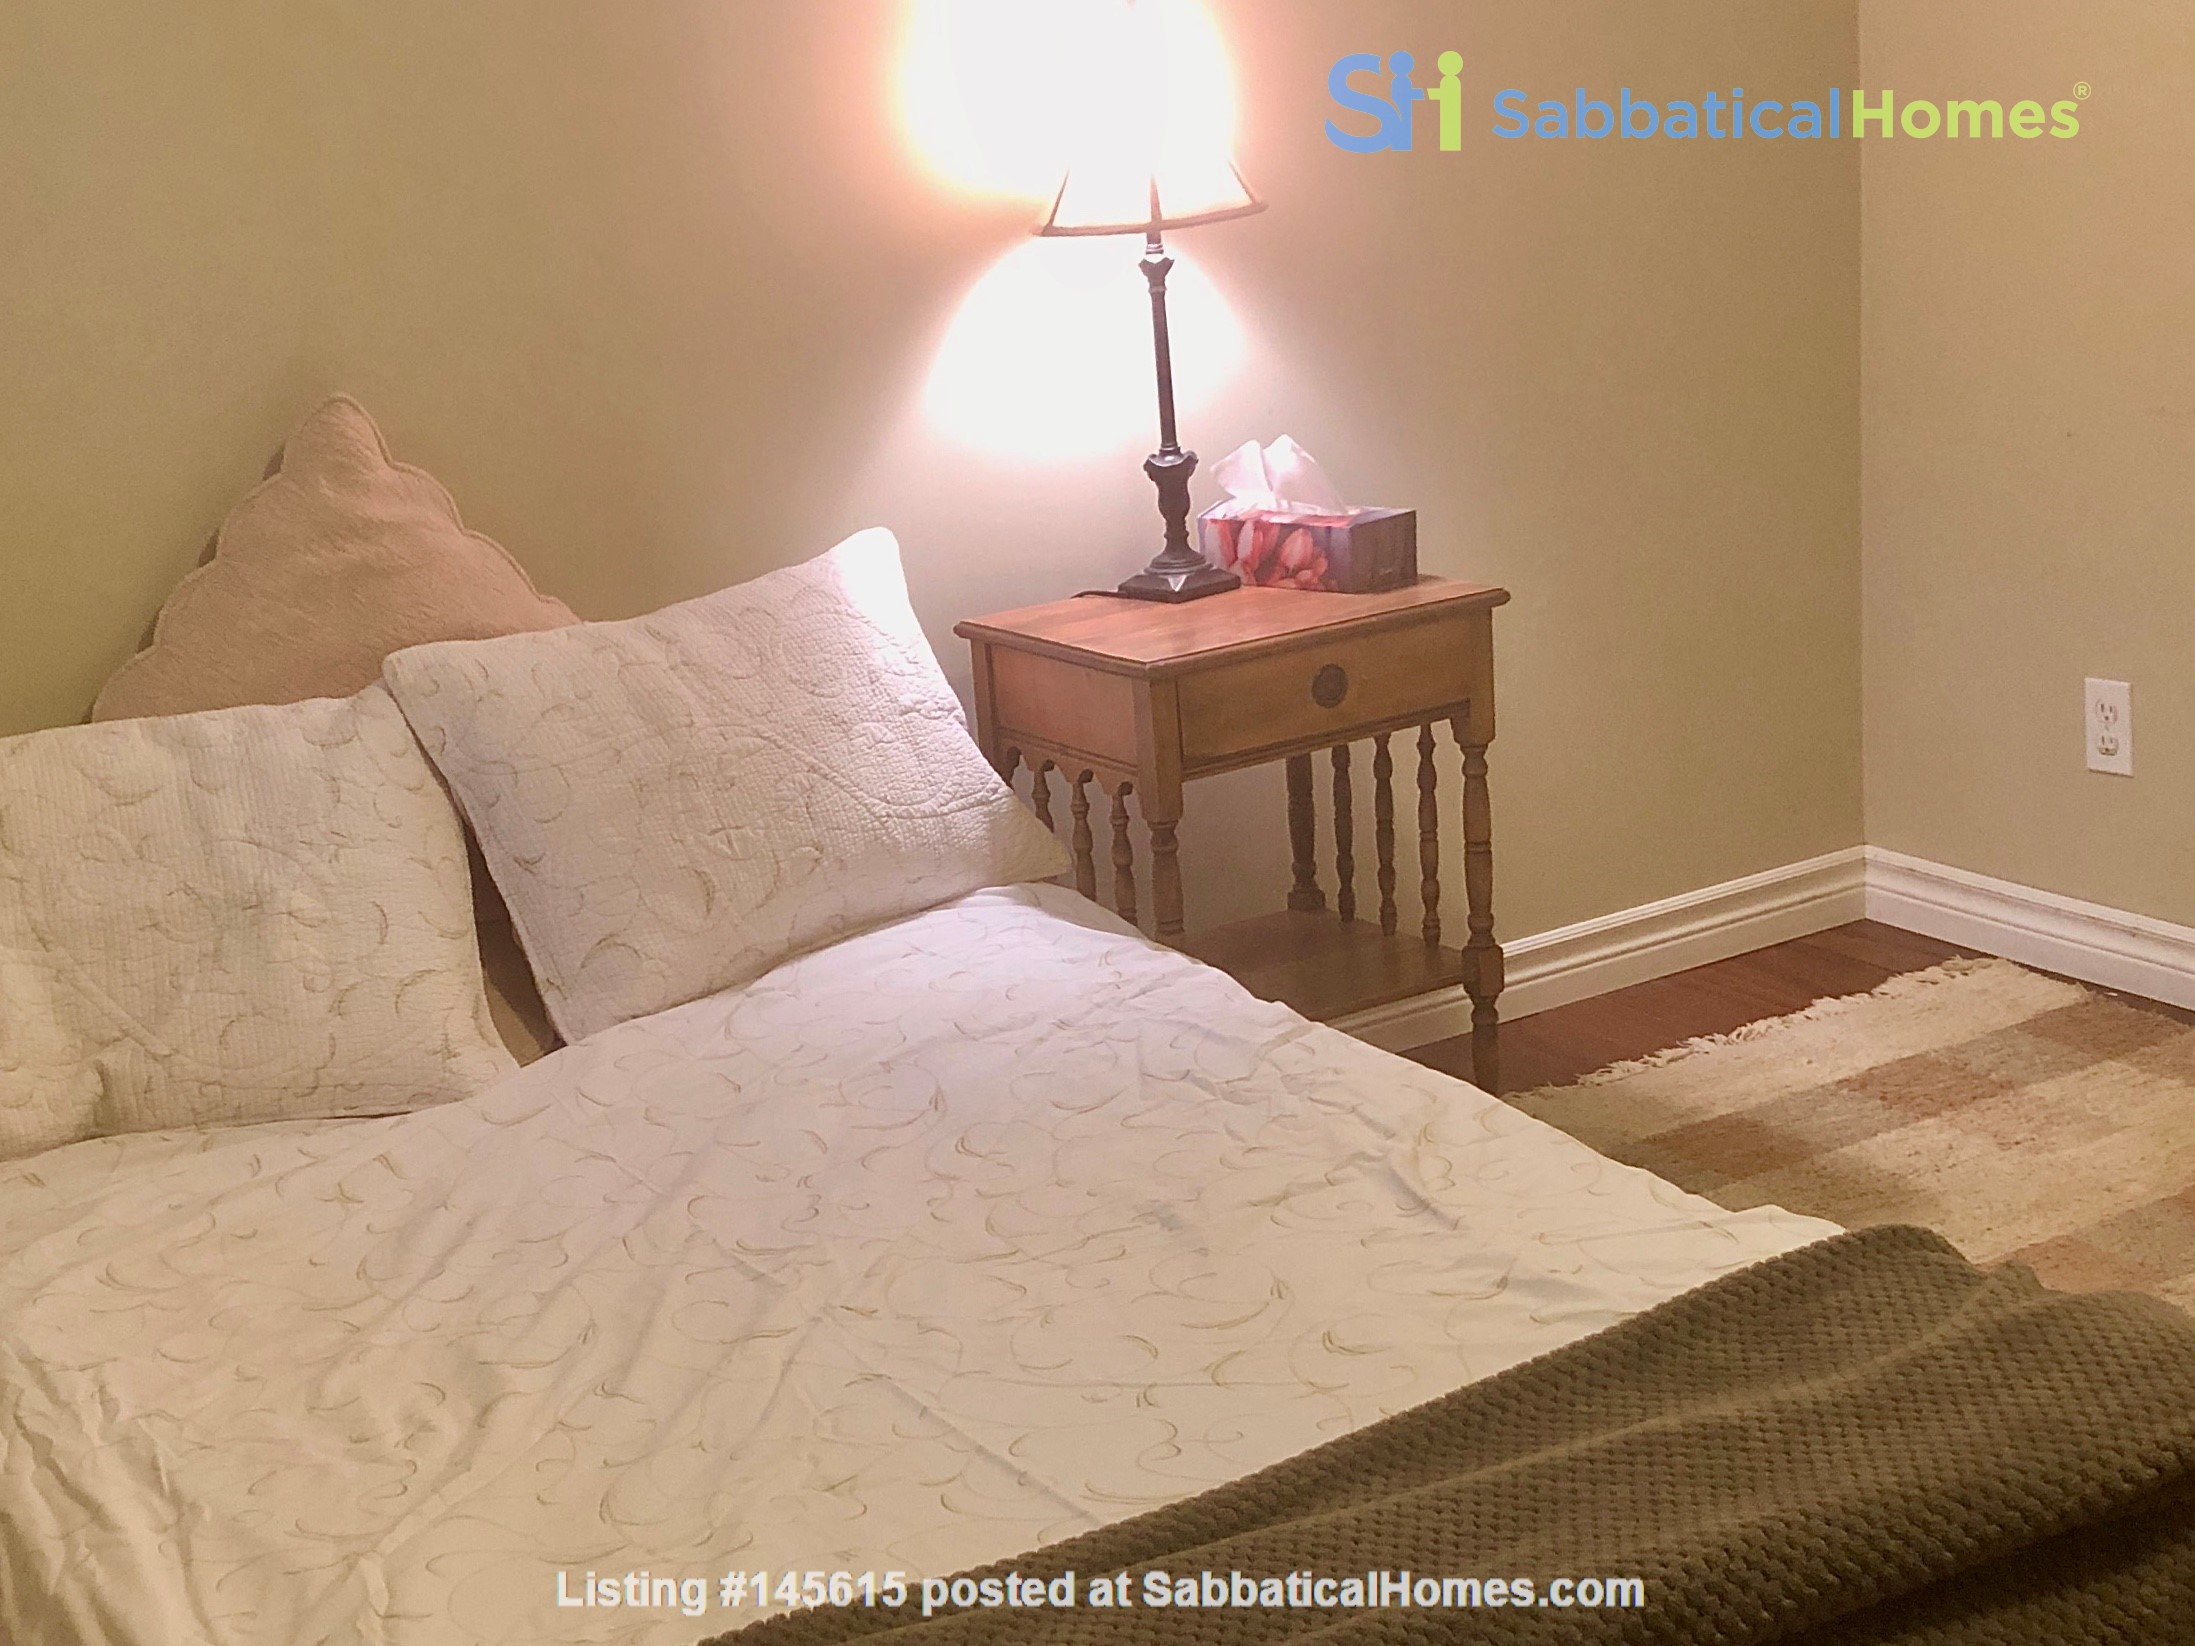 Apartment in quiet bungalow, 10 minutes walk to U of Guelph campus. Home Rental in Guelph, Ontario, Canada 5